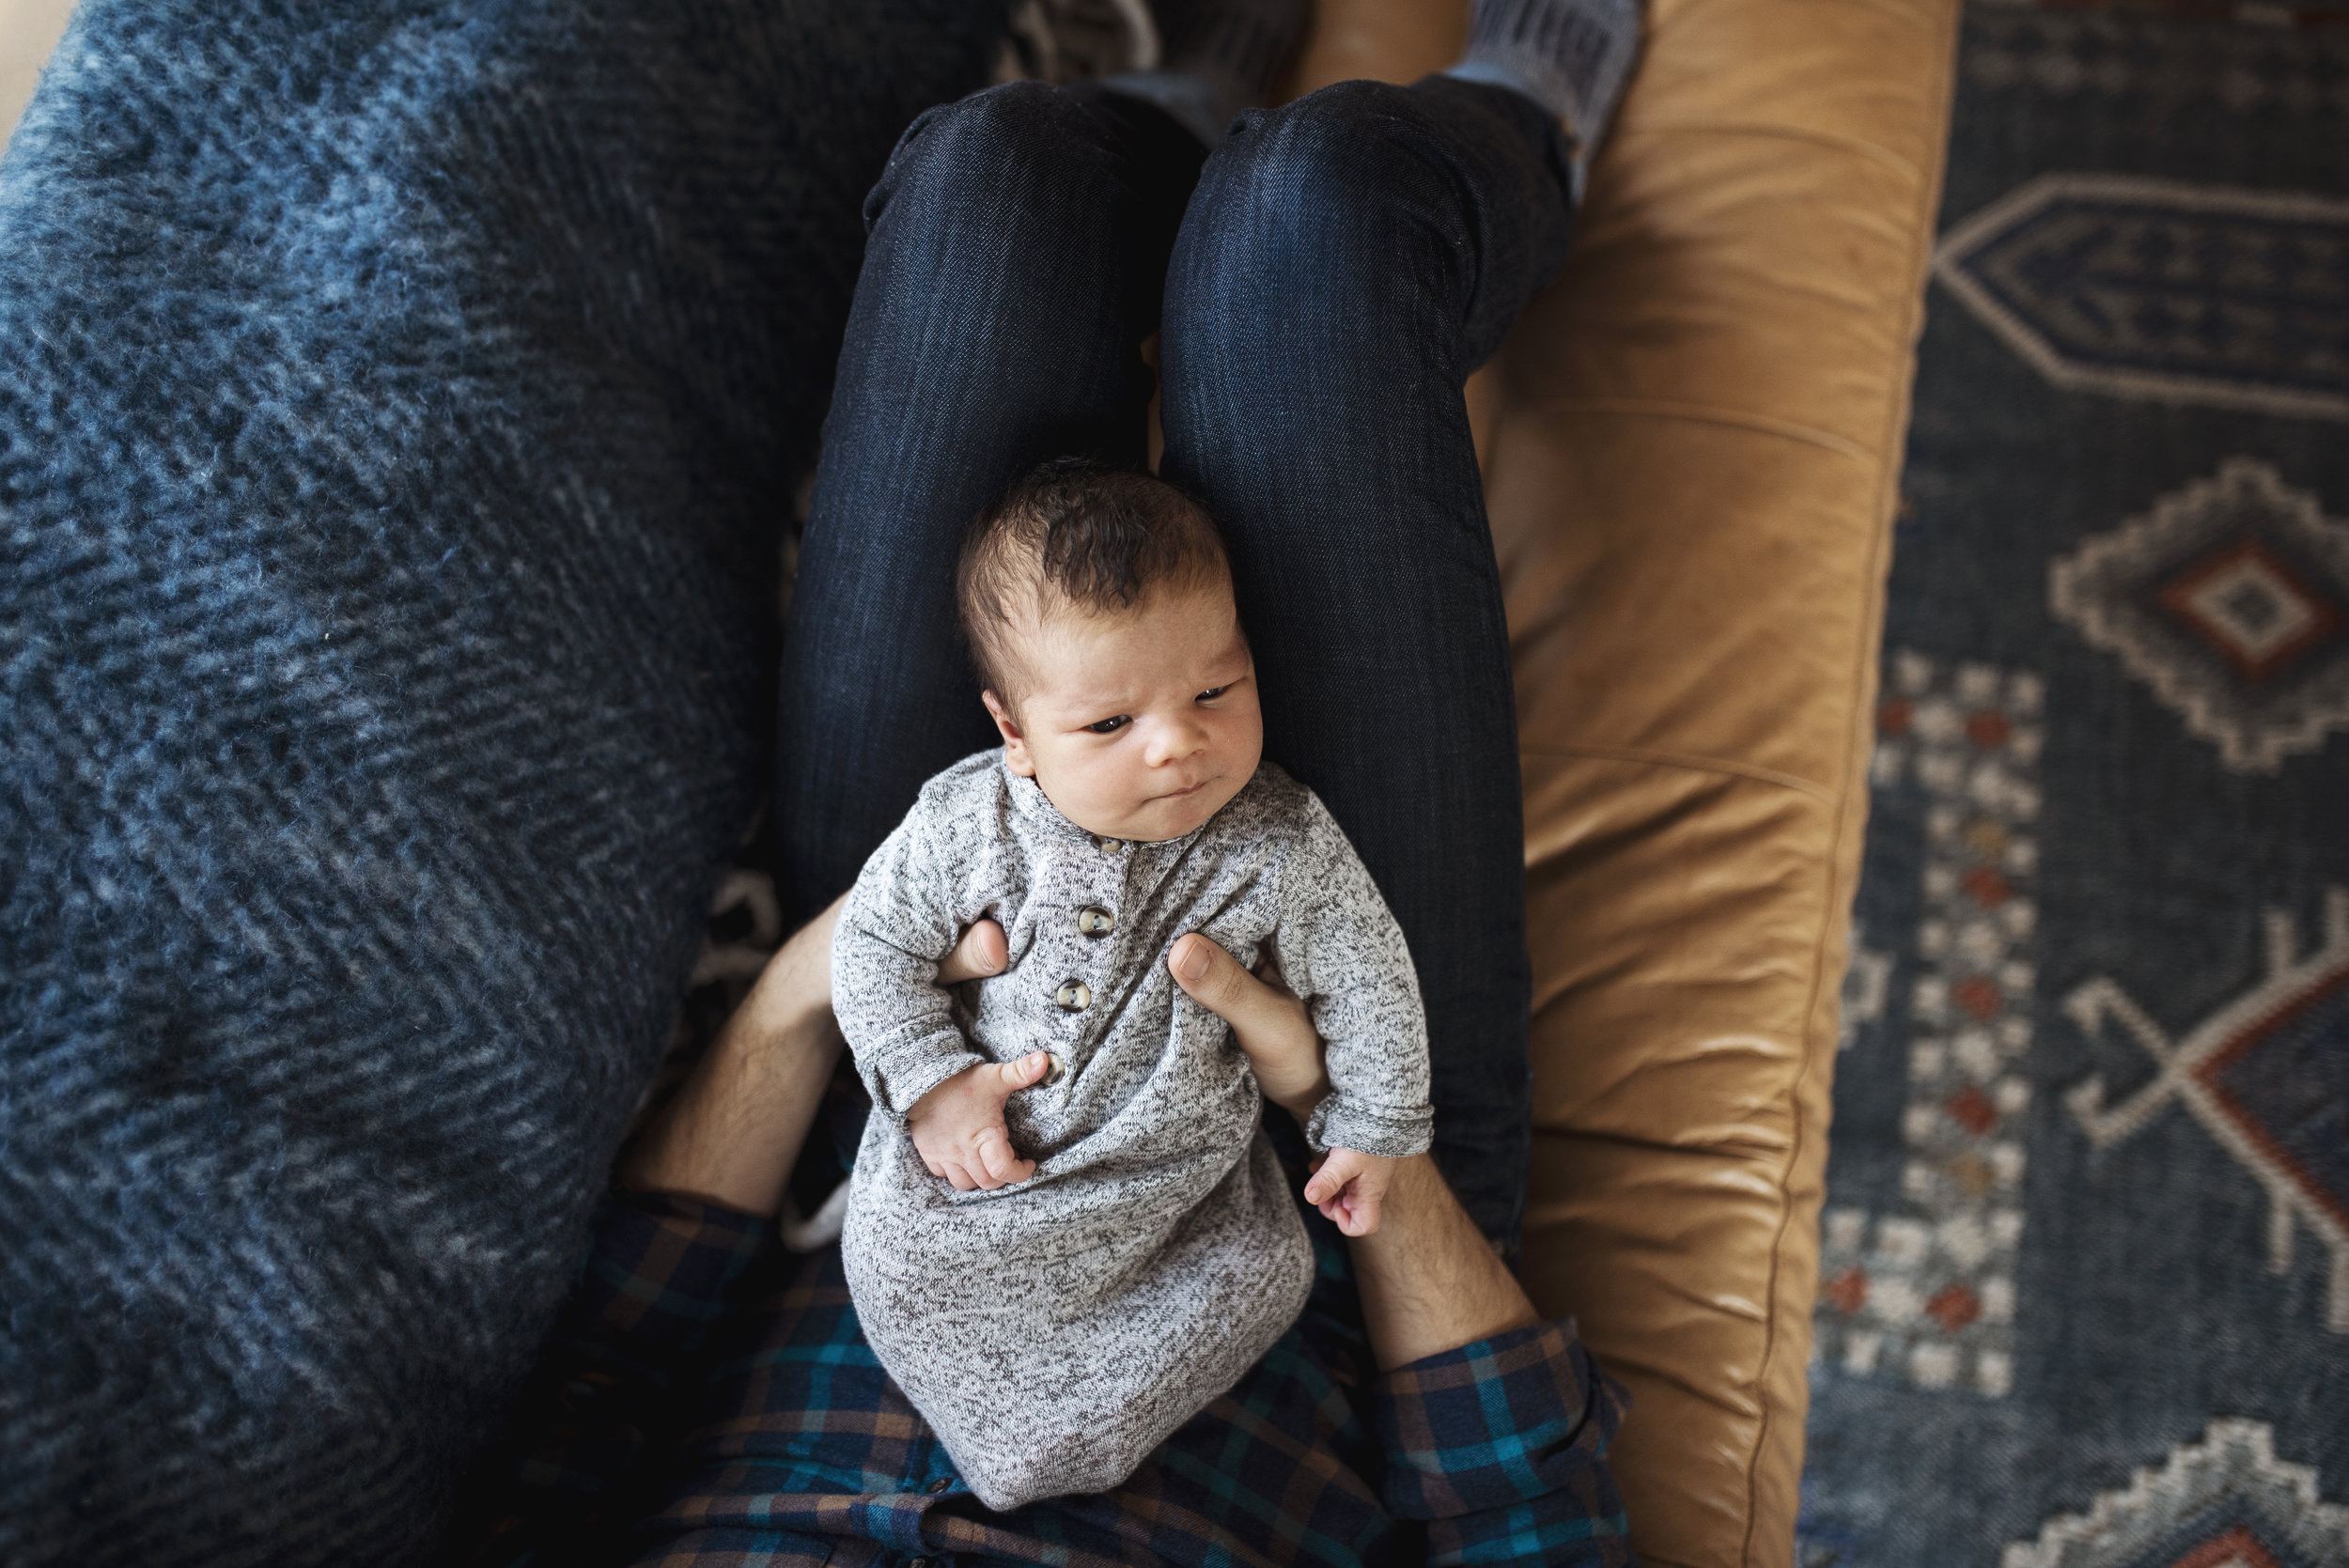 Newborn photographer Seattle baby is awake and on dad's lap on couch